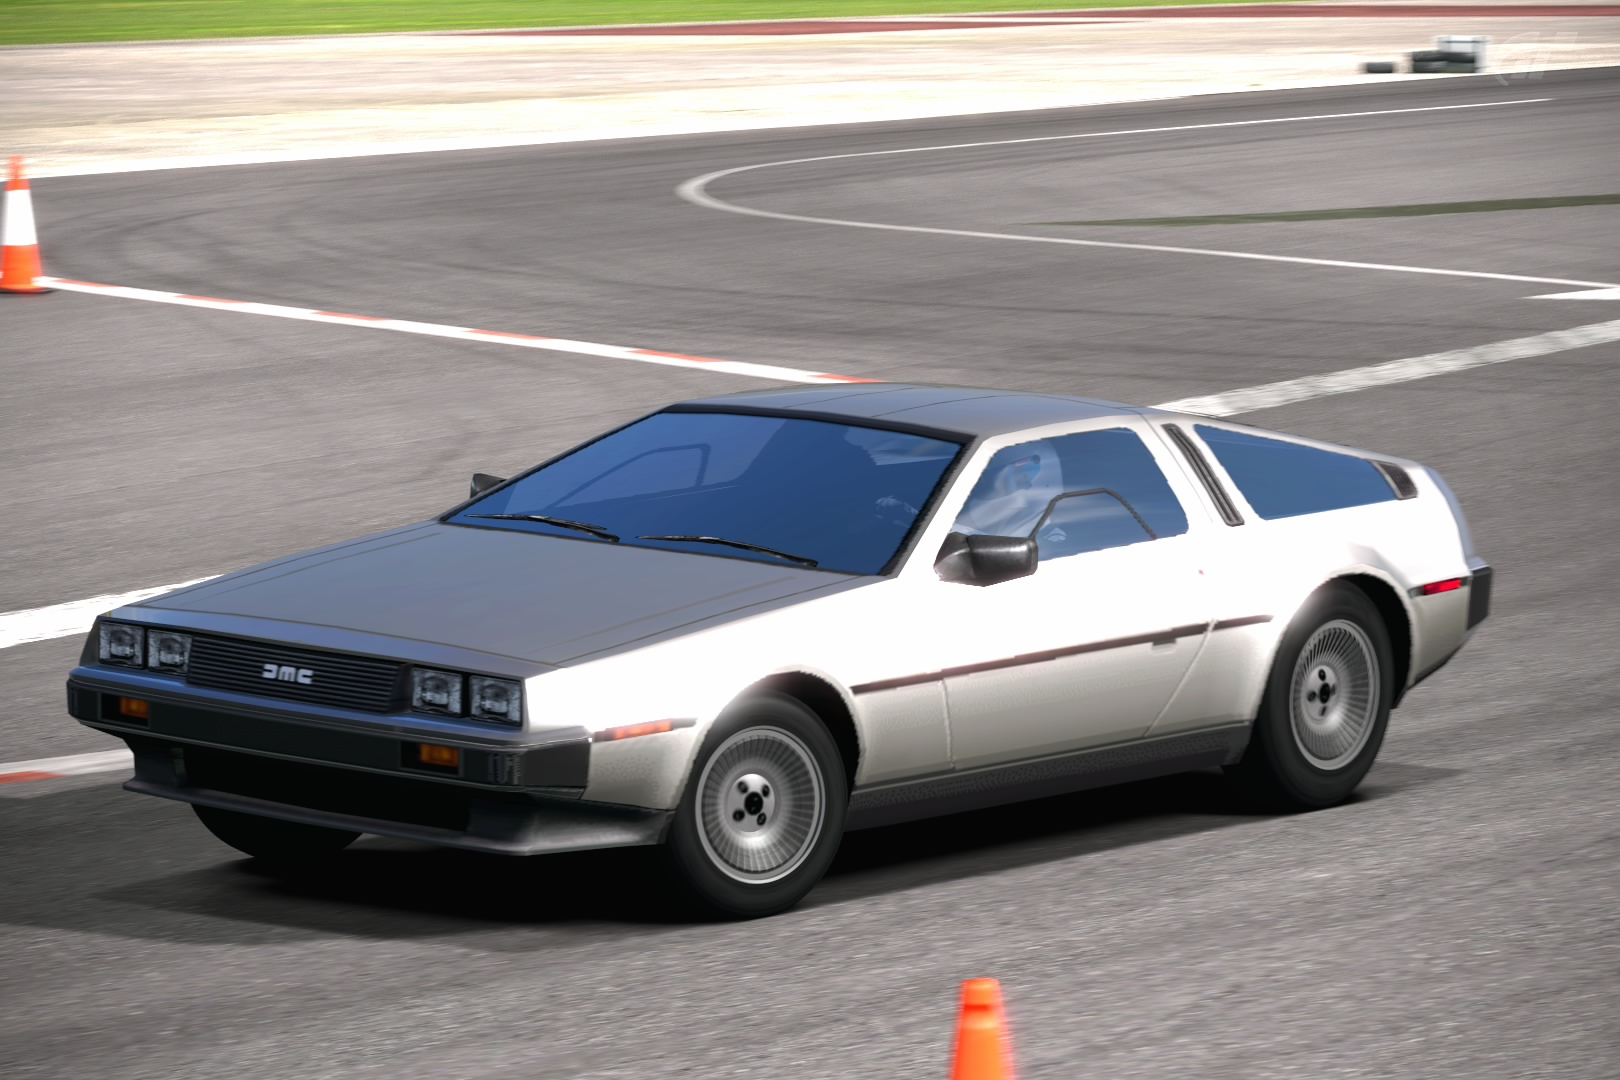 Delorean DMC-12 #11